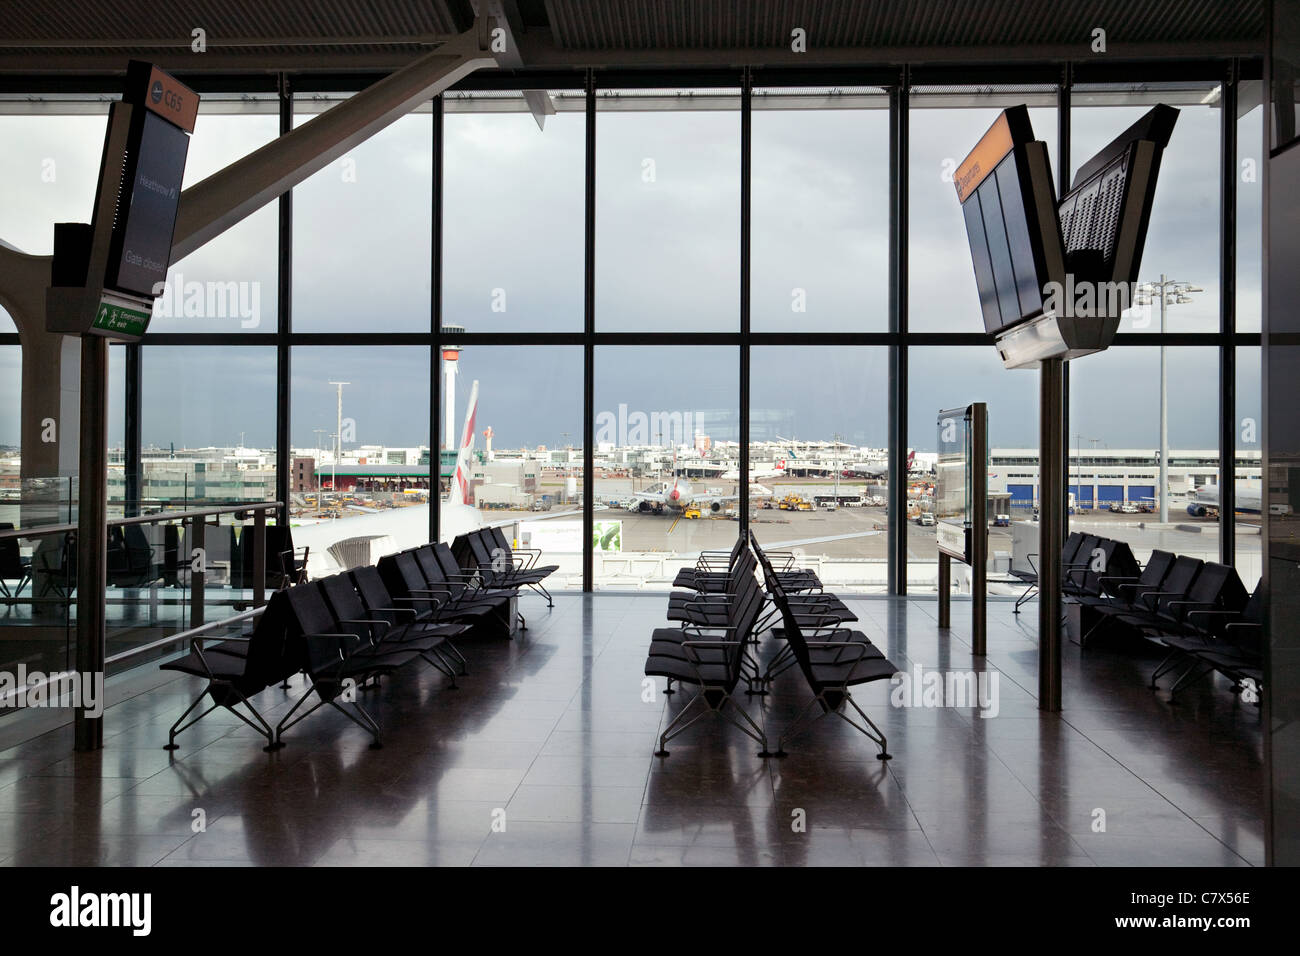 Empty departure Gate, terminal 5, Heathrow airport London UK - Stock Image